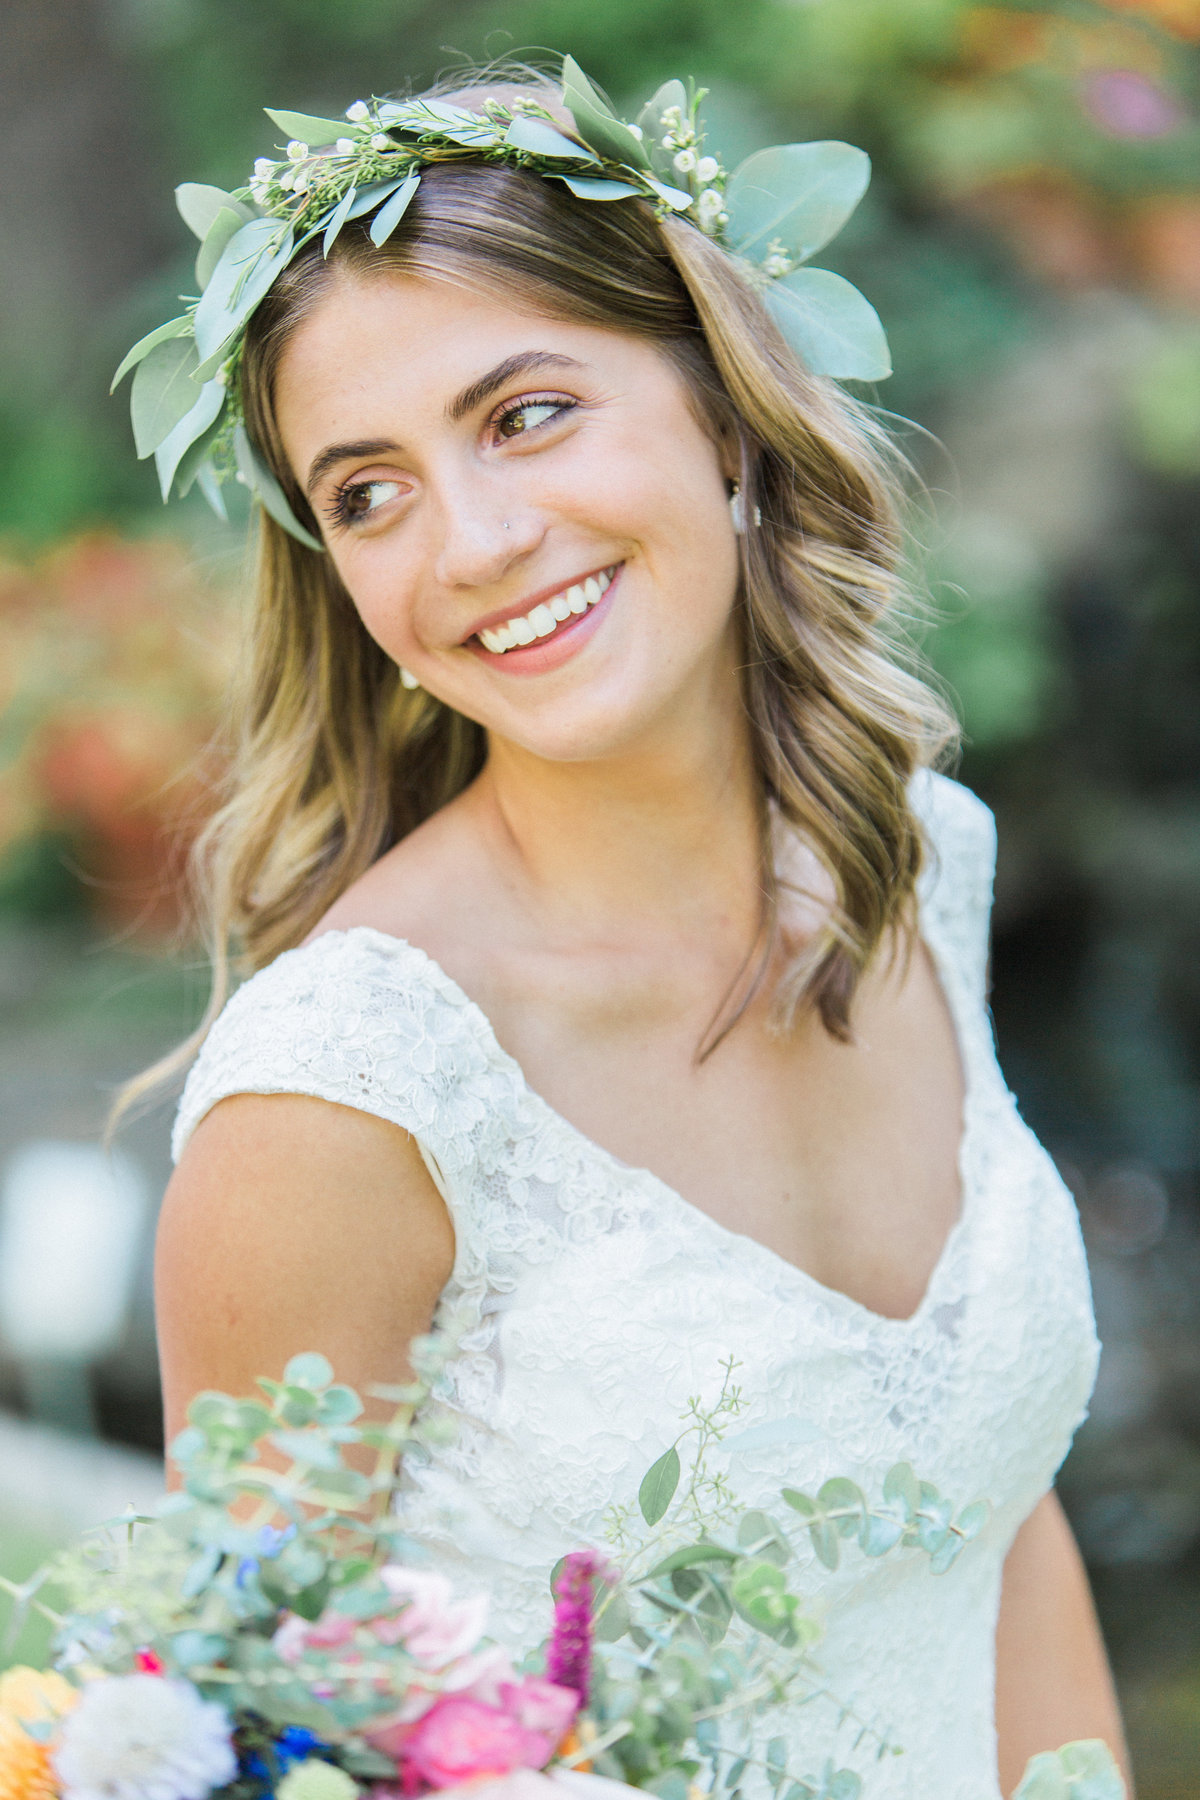 Charley Creek Gardens Wedding Bride Smiling Photo